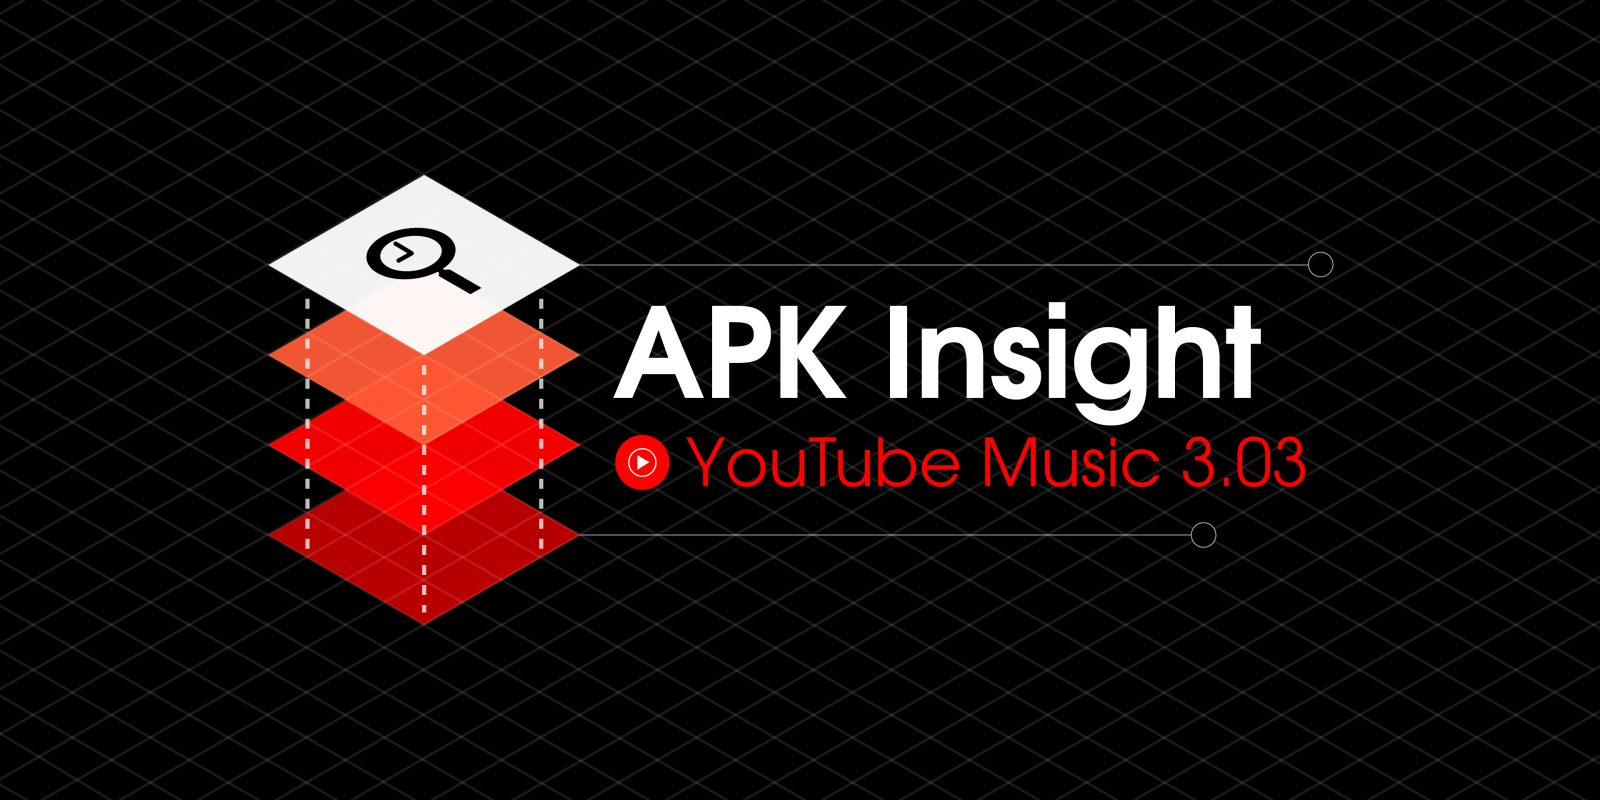 YouTube Music 3 03 adds Android Auto support [APK Insight